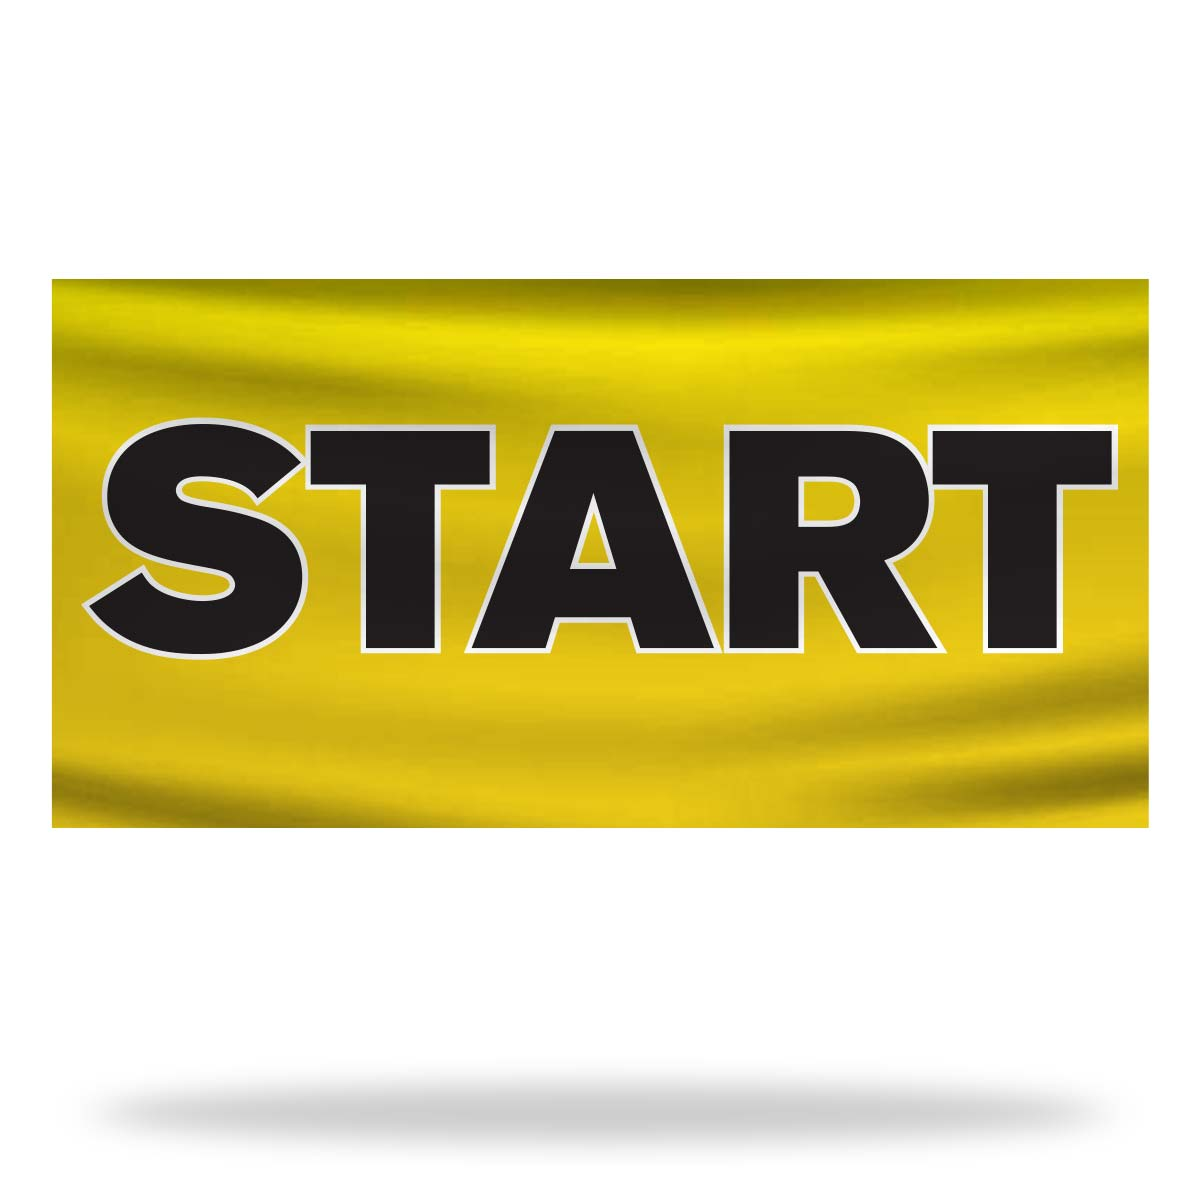 Start Flags & Banners Design 01